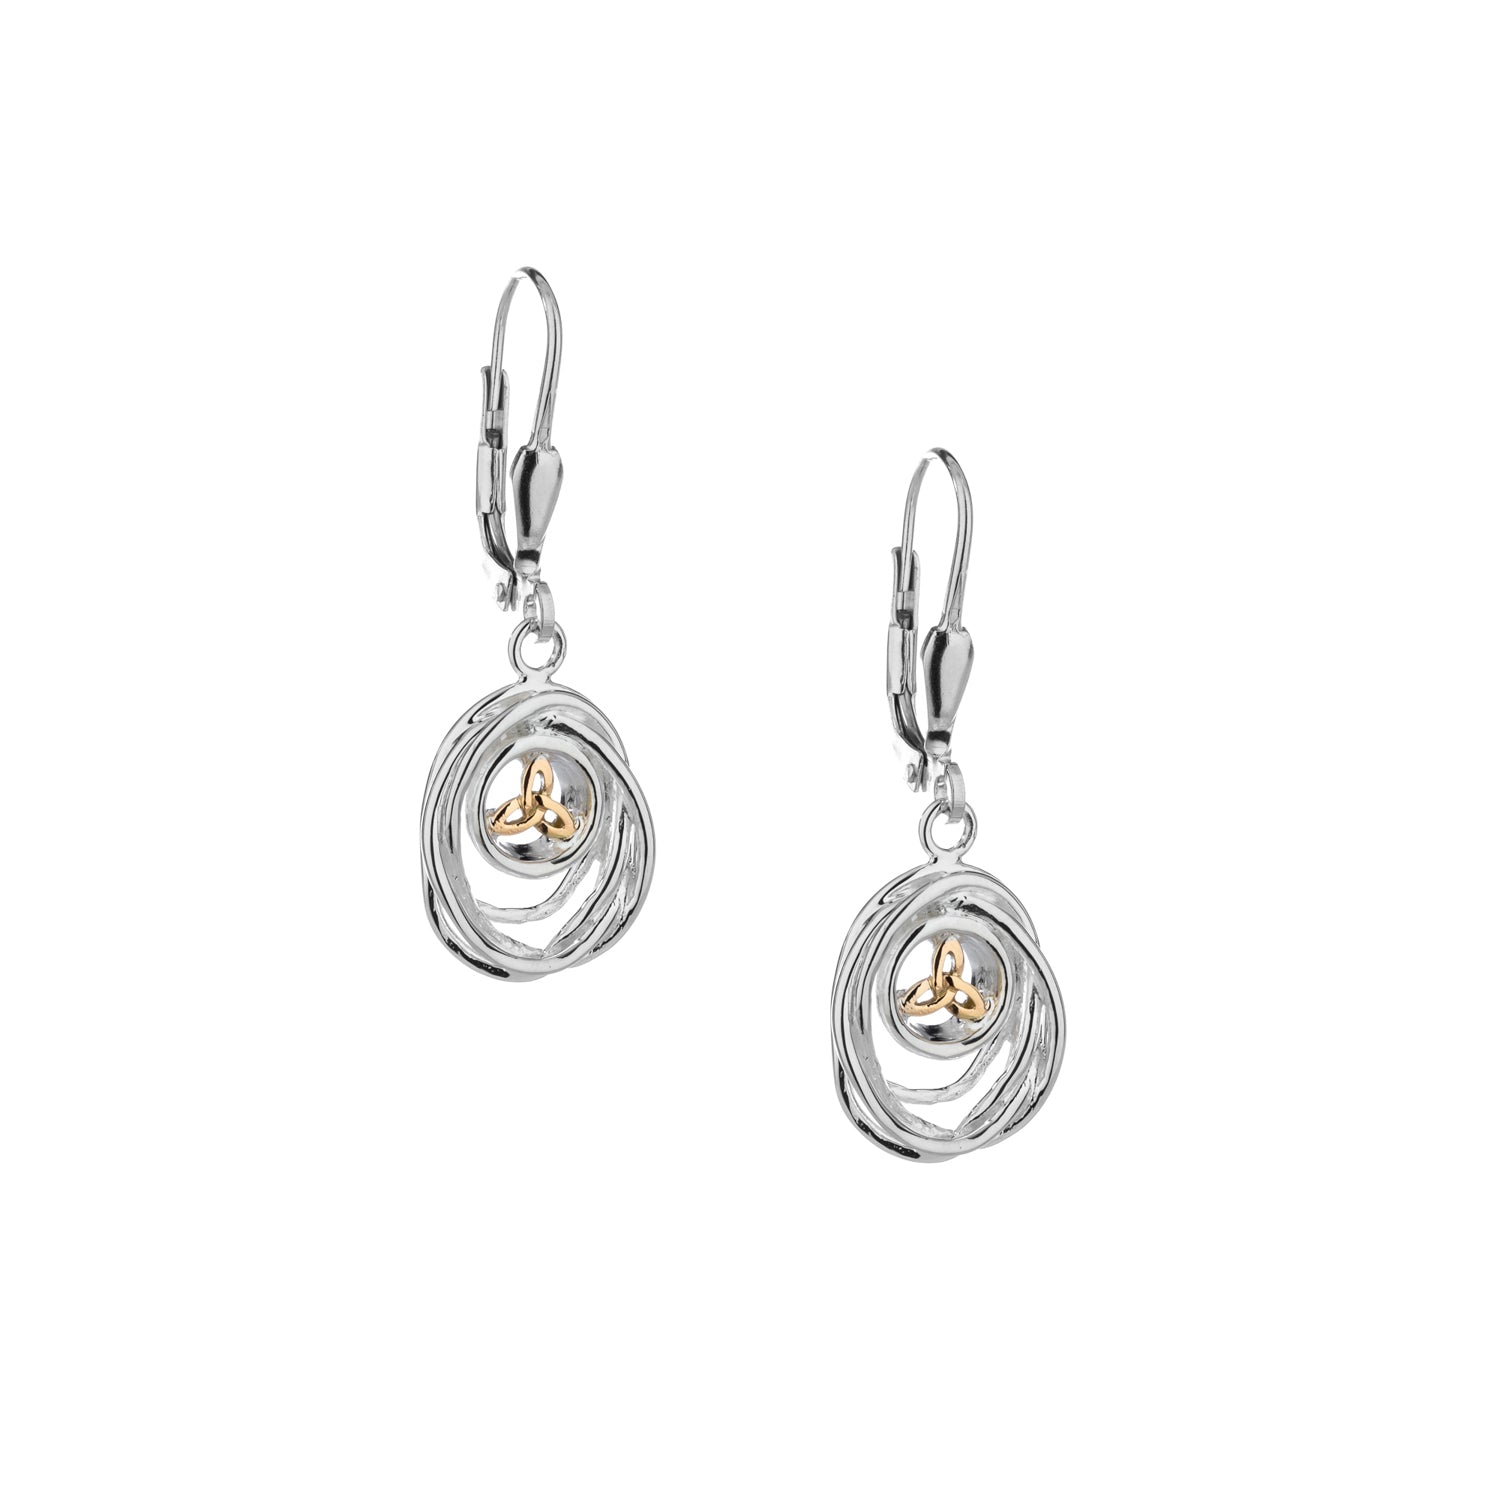 Earrings 10k Celtic Cradle of Life Leverback Drop Earrings from welch and company jewelers near syracuse ny